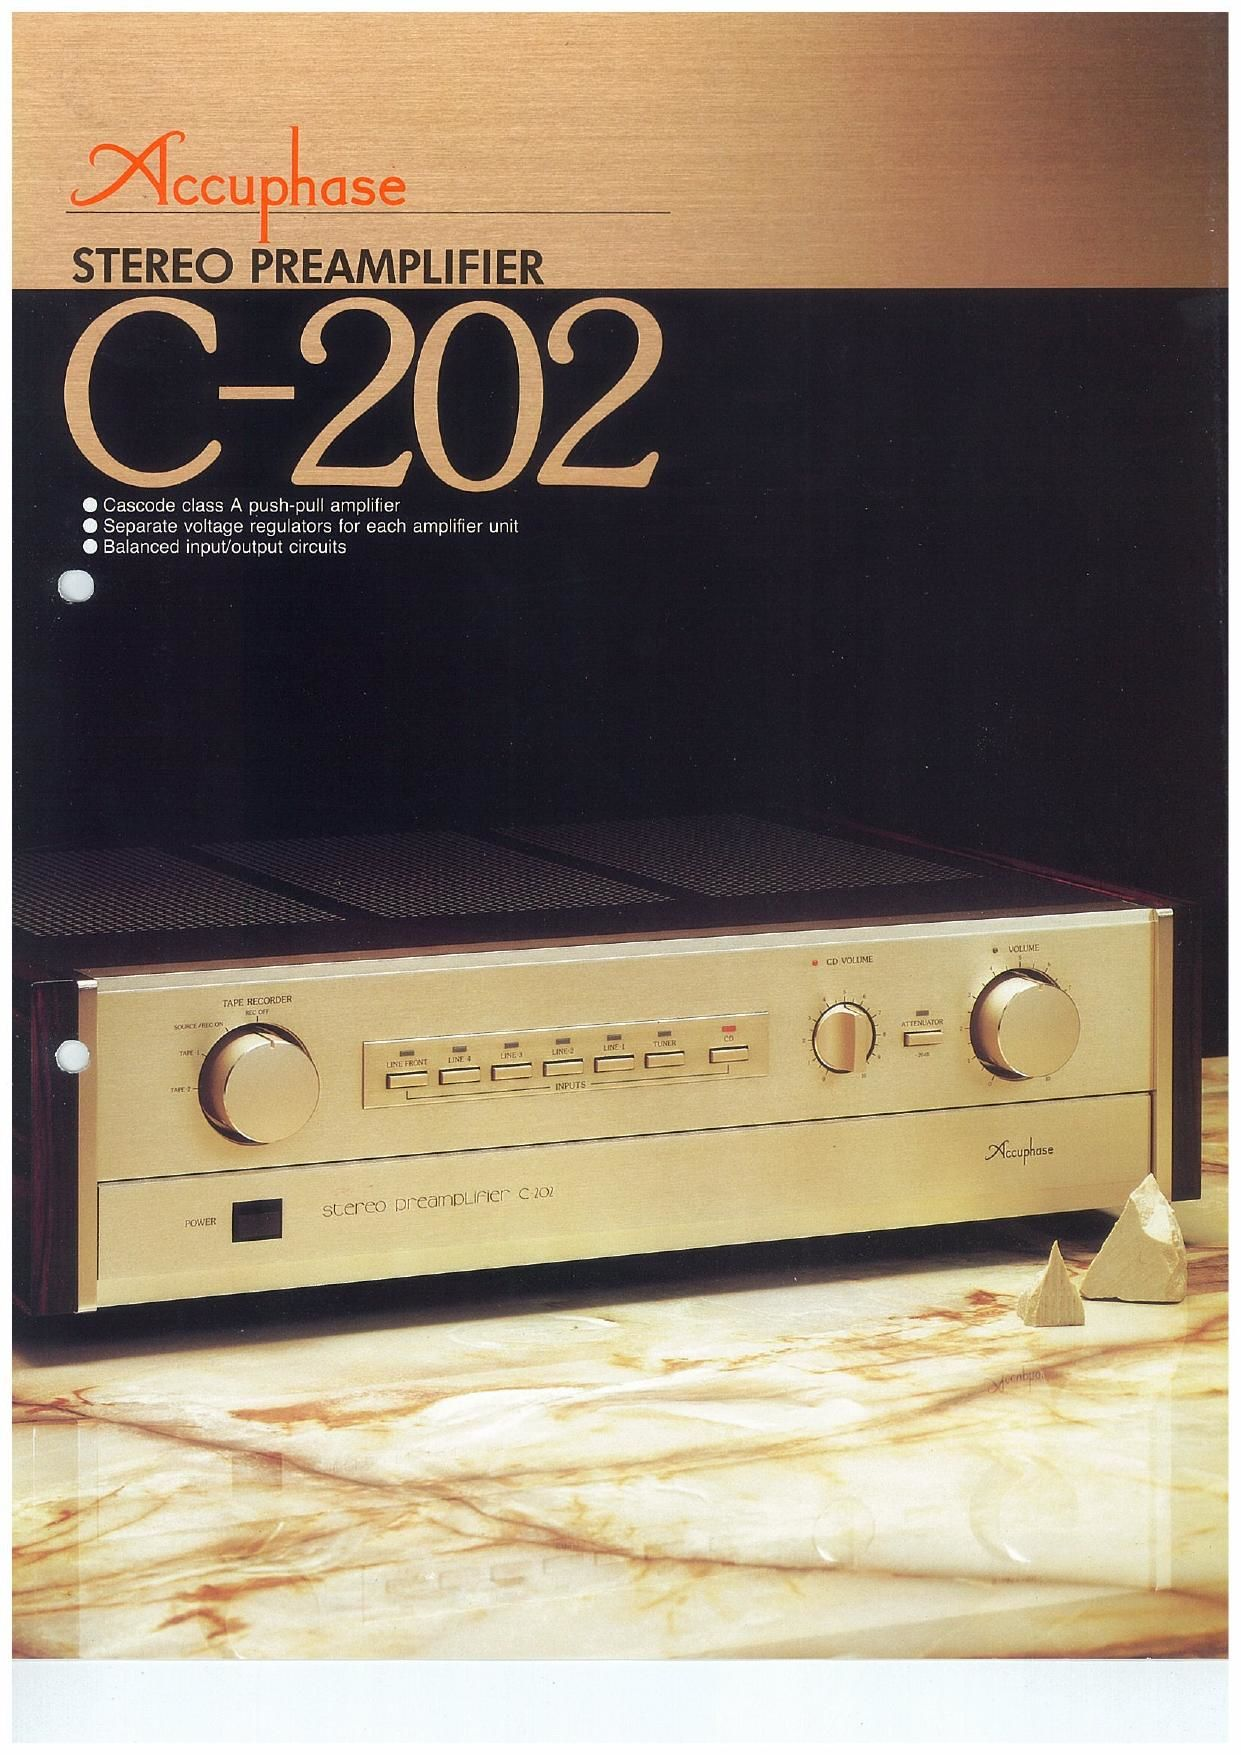 Accuphase C 202 Brochure